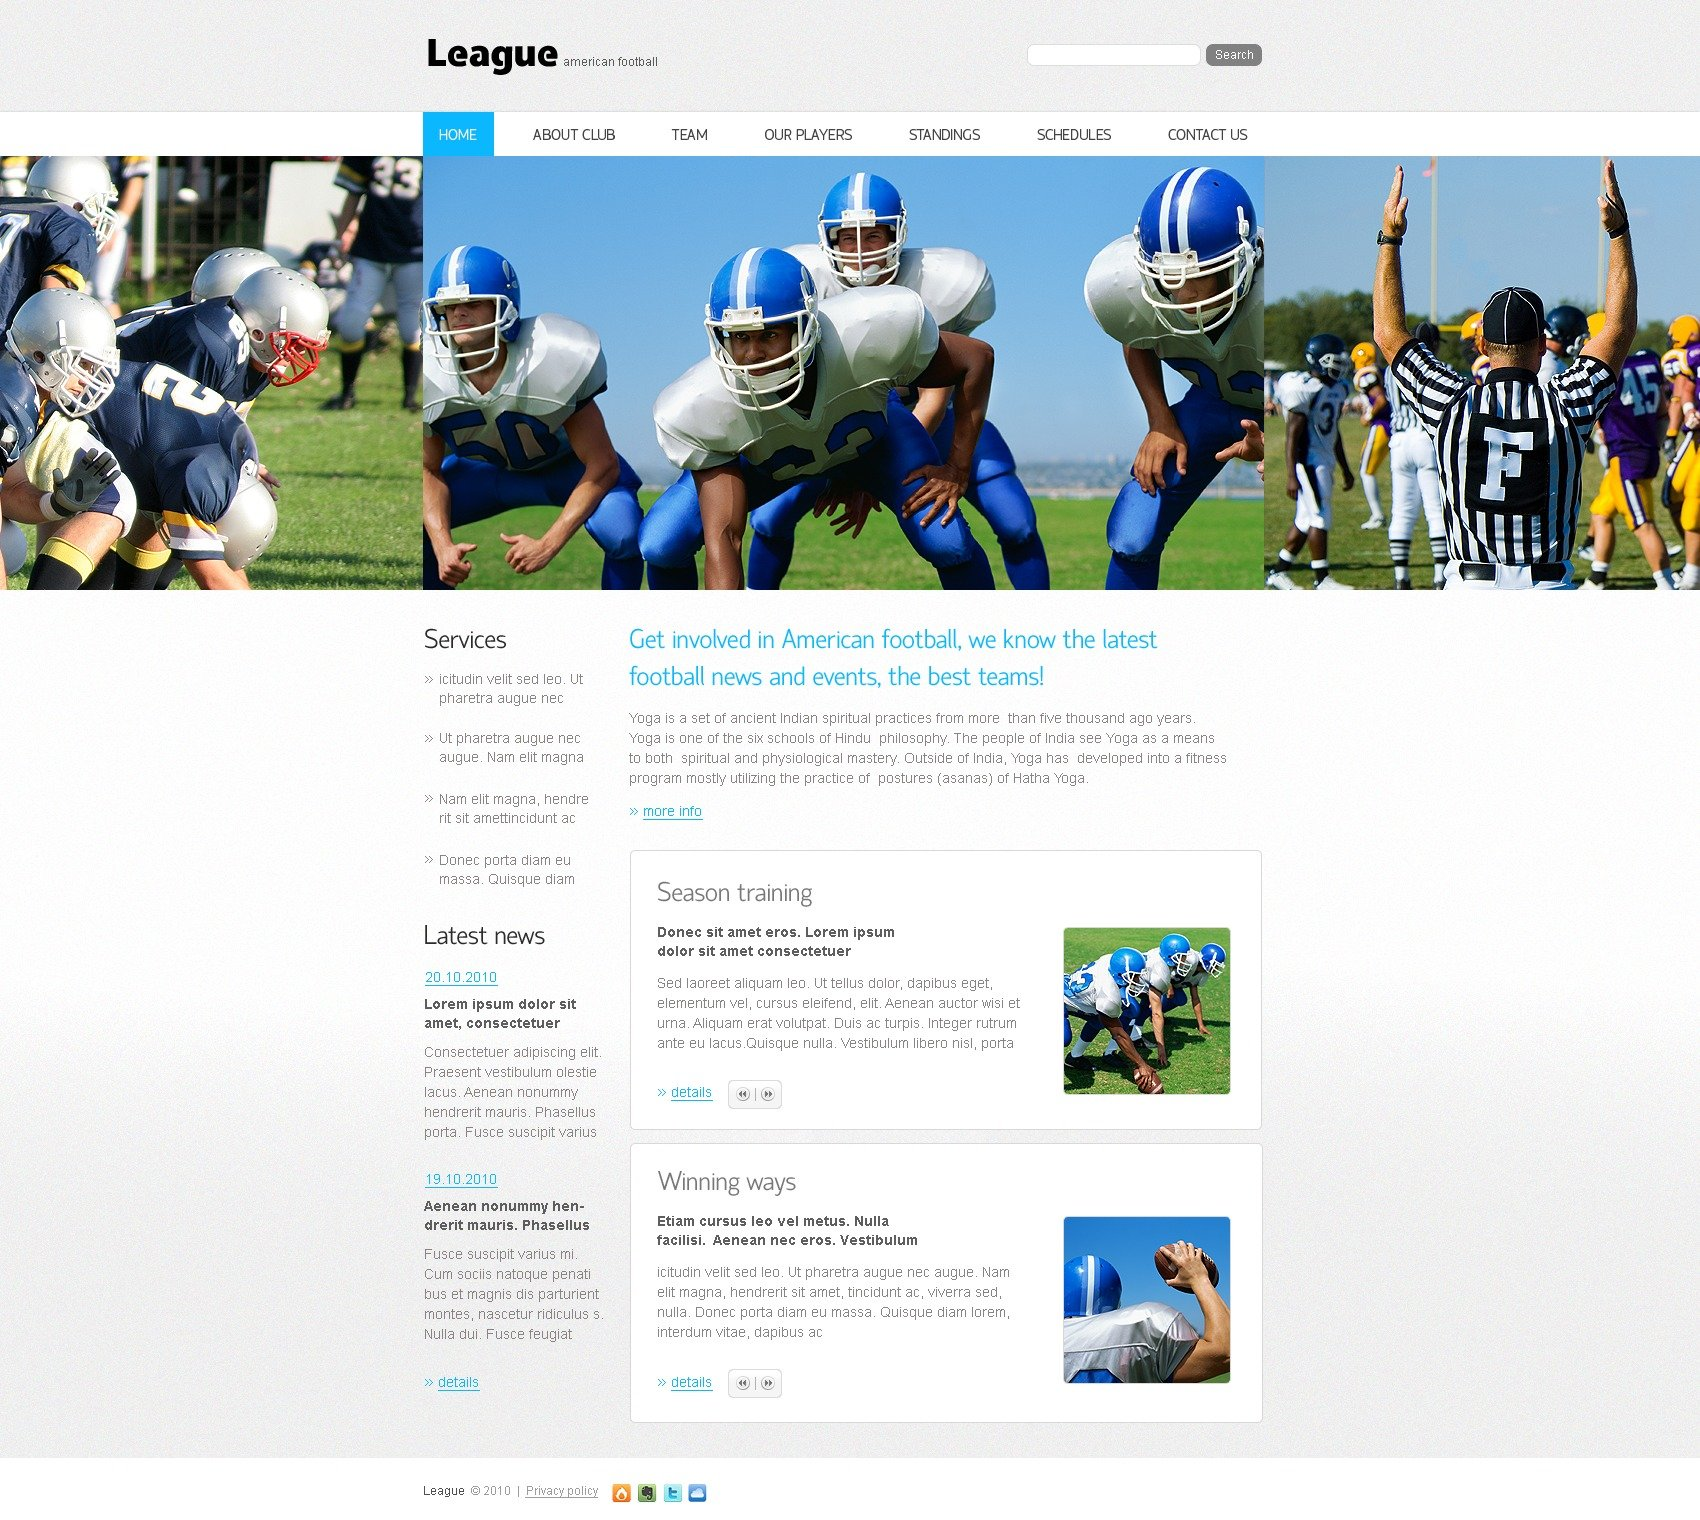 The League American PSD Design 54348, one of the best PSD templates of its kind (sport, most popular, flash 8, wide), also known as league american PSD template, football PSD template, syndrom PSD template, rugby PSD template, sport PSD template, game PSD template, news PSD template, team PSD template, league PSD template, score PSD template, championship PSD template, season PSD template, result PSD template, player PSD template, programs PSD template, photos PSD template, contacts PSD template, series PSD template, training PSD template, search PSD template, go PSD template, flash PSD template, tickets PSD template, info PSD template, video PSD template, latest sports PSD template, activities PSD template, action clubbing PSD template, team PSD template, group PSD template, people PSD template, newsflash PSD template, com and related with league american, football, syndrom, rugby, sport, game, news, team, league, score, championship, season, result, player, programs, photos, contacts, series, training, search, go, flash, tickets, info, video, latest sports, activities, action clubbing, team, group, people, newsflash, com, etc.